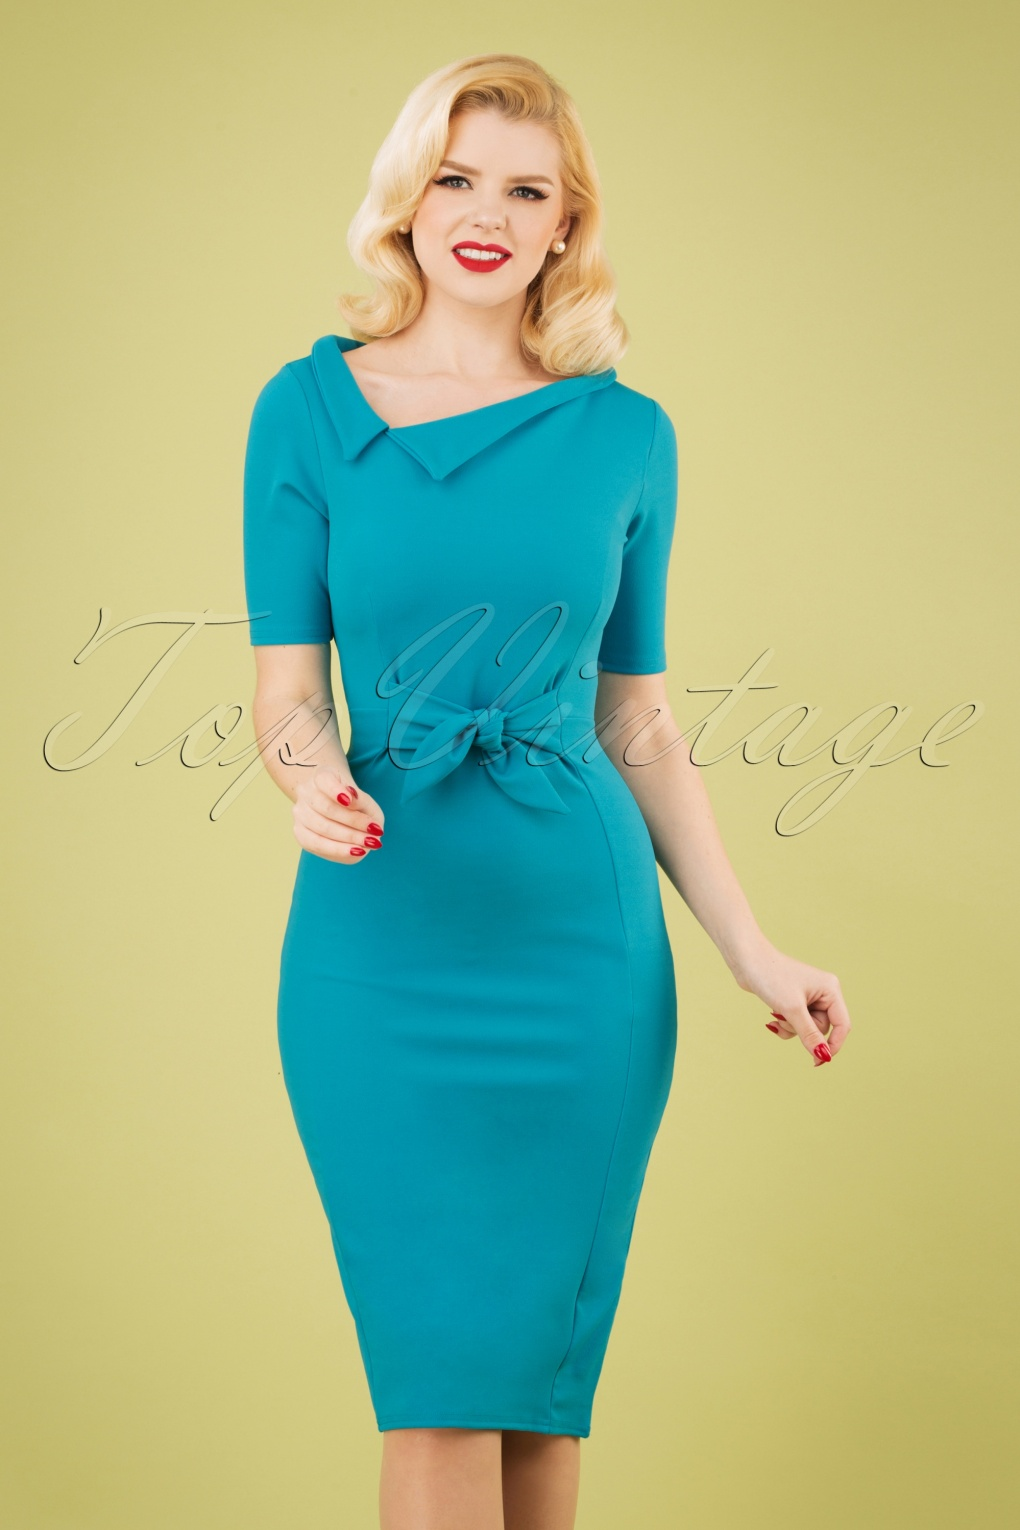 0b3a3f5bde2 Vintage 50s Dresses  Best 1950s Dress Styles 50s Jennifer Pencil Dress in  Aqua Blue £